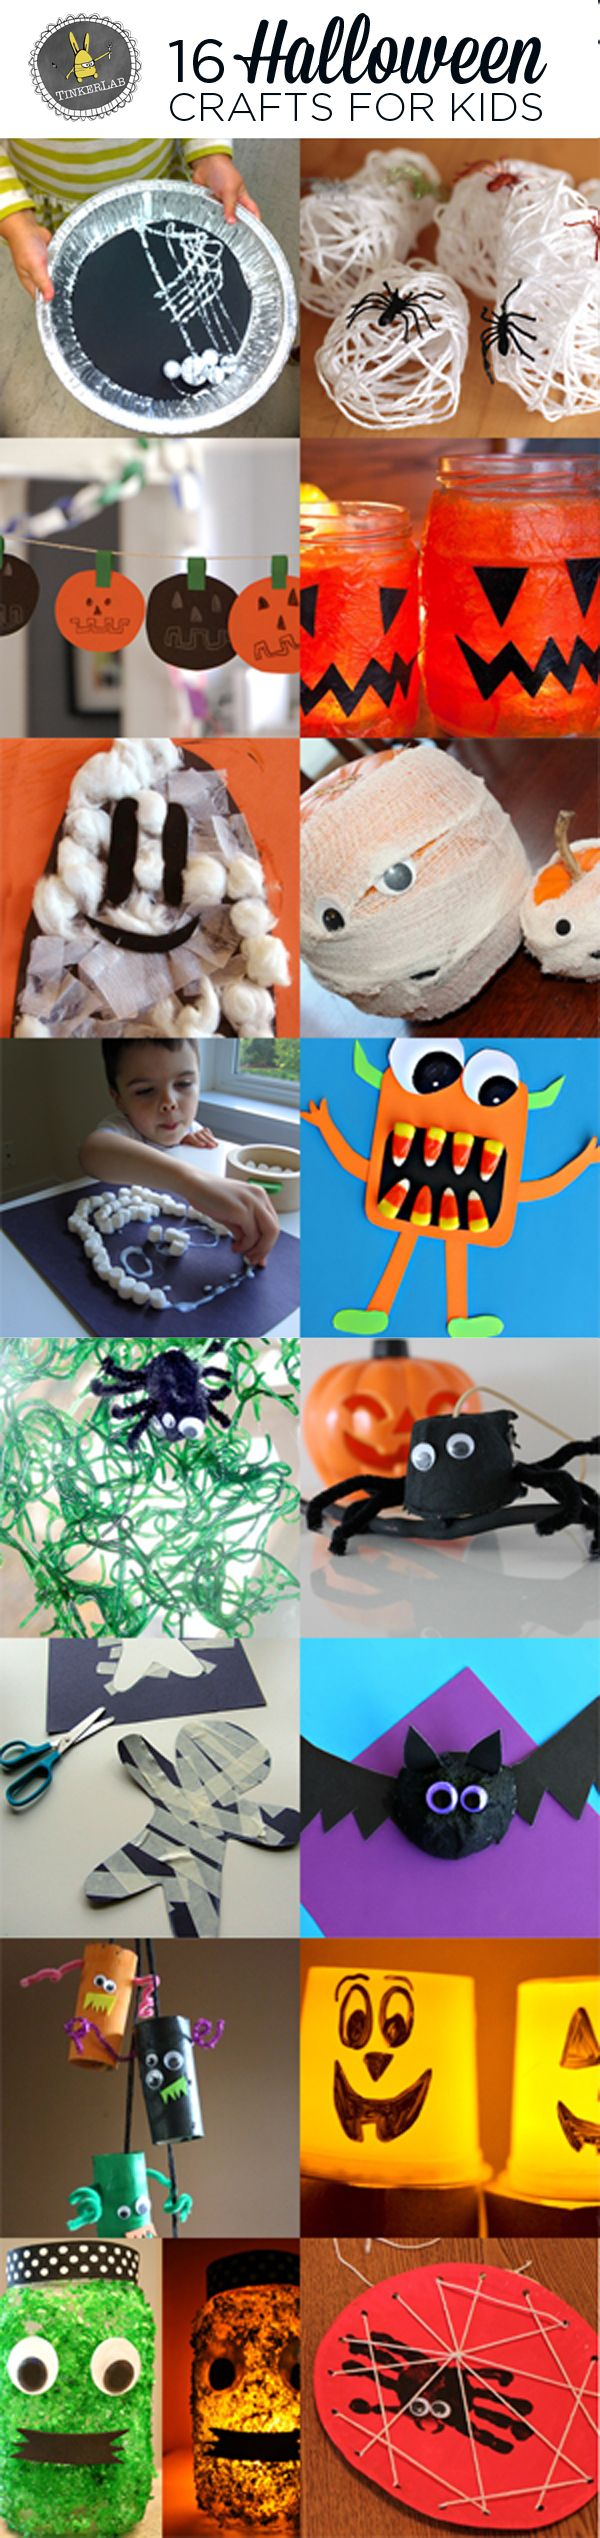 halloween crafts for kids - Preschool Halloween Crafts Ideas